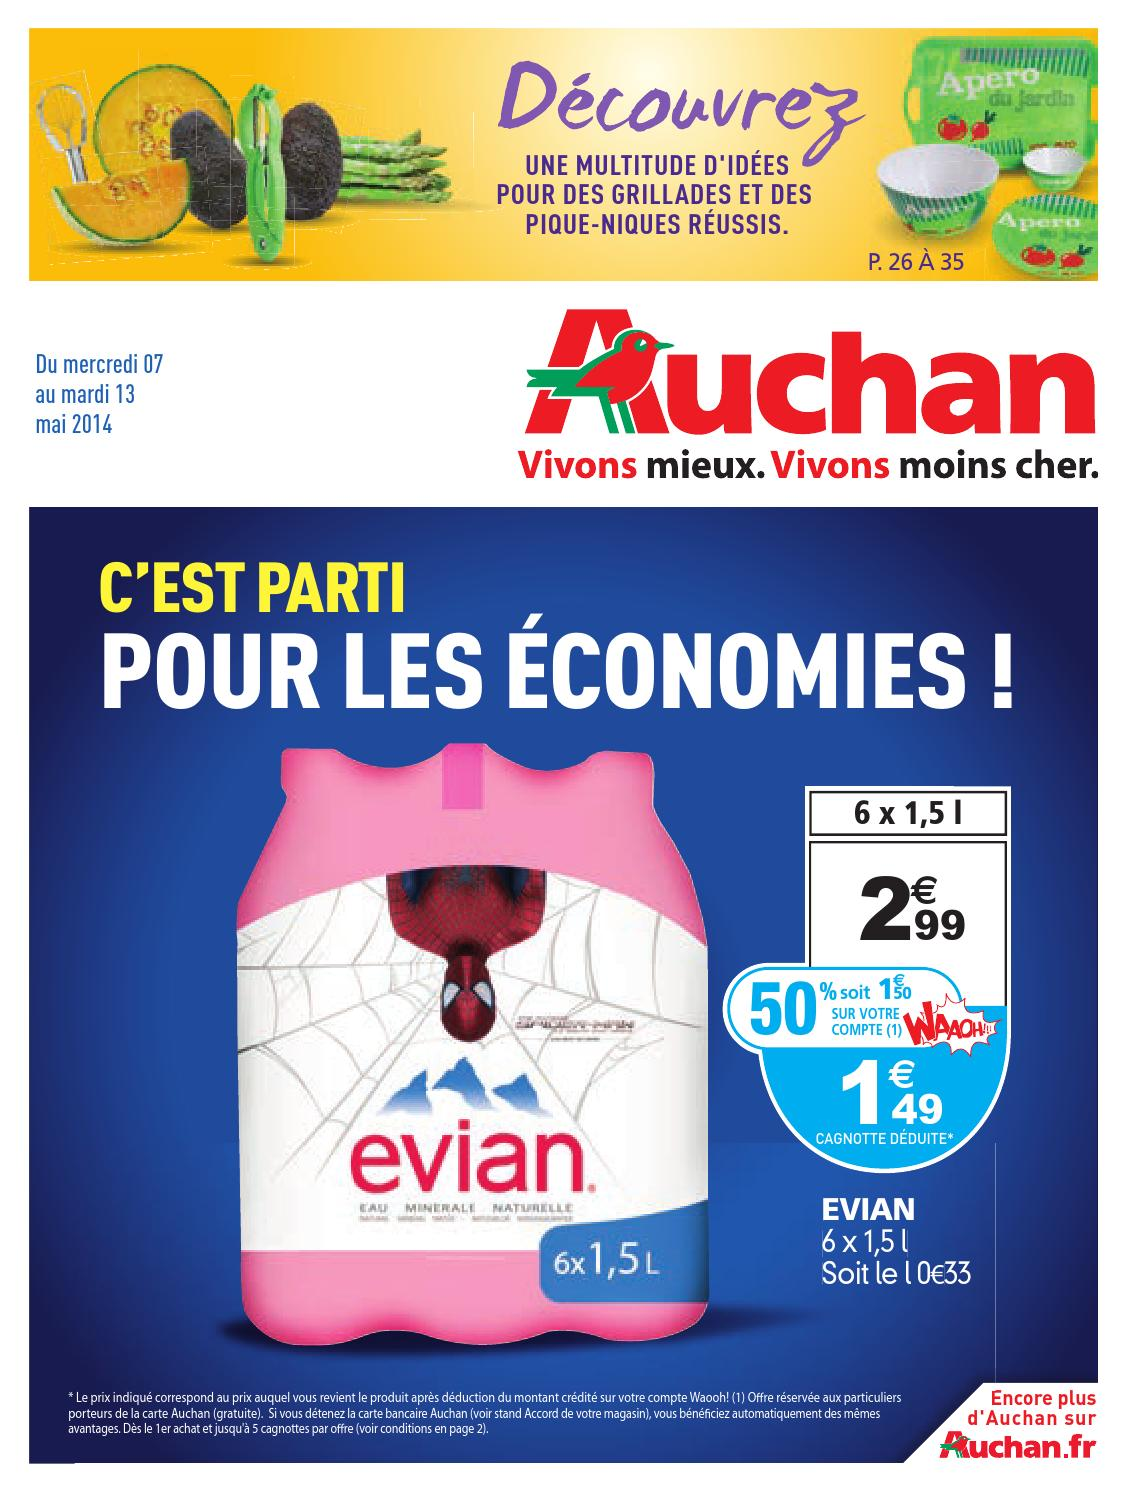 Meuble Auchan Sarcelles Anti Crise Fr Catalogue Auchan Du 7 Au 13 Mai By Anti Crise Fr